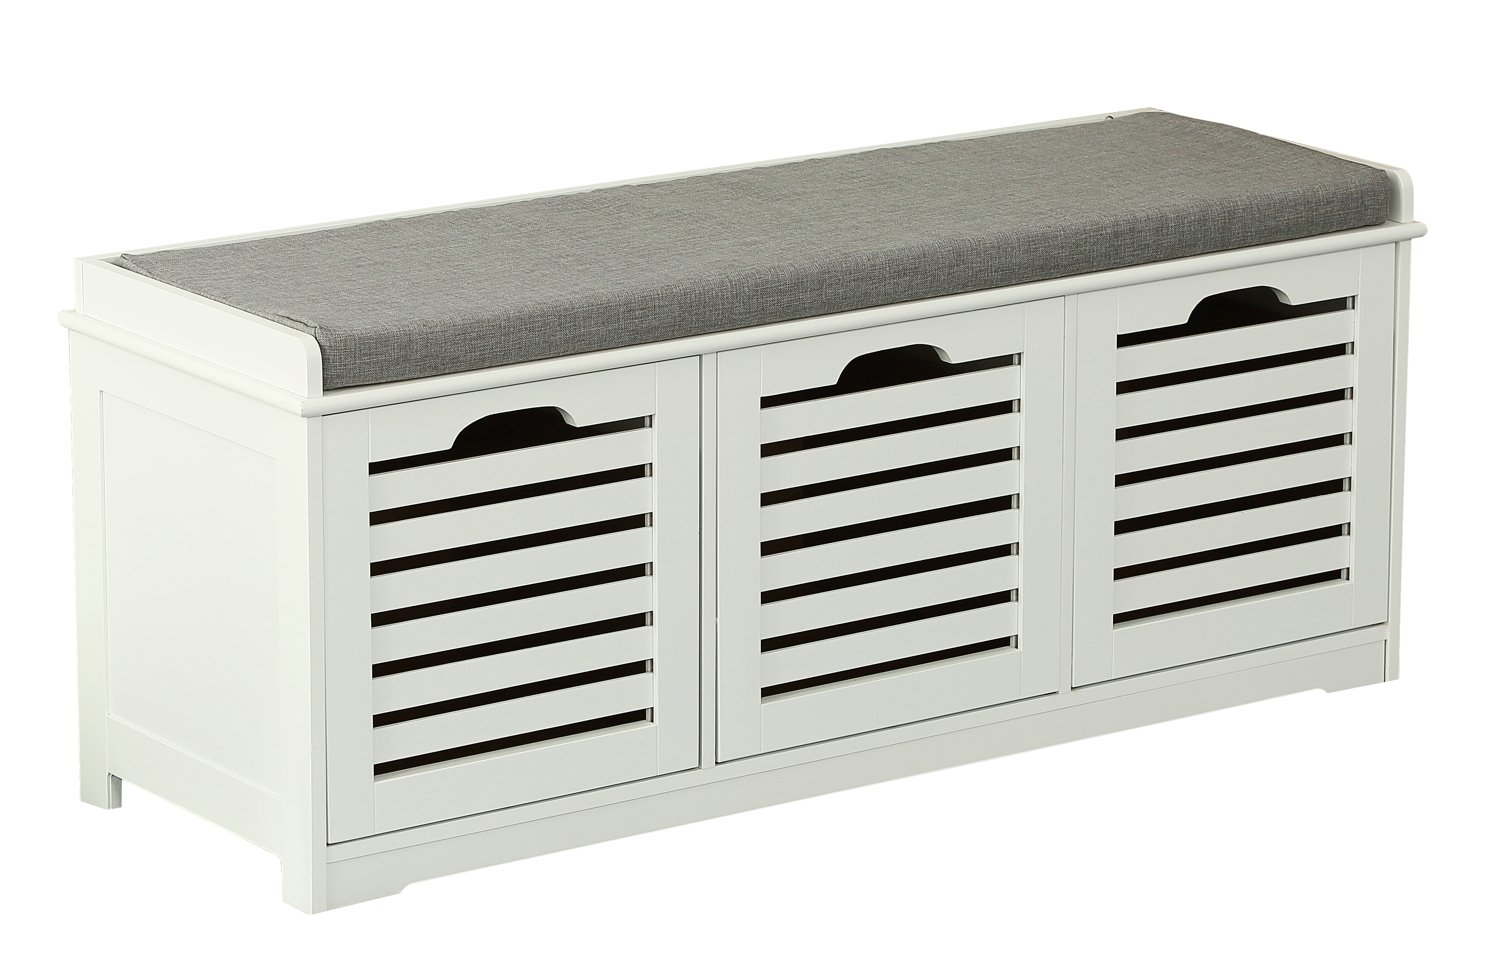 Orolay Storage Bench with 3 Crates Shoe Cabinet Soft Seat Cushion ZHXD23 White